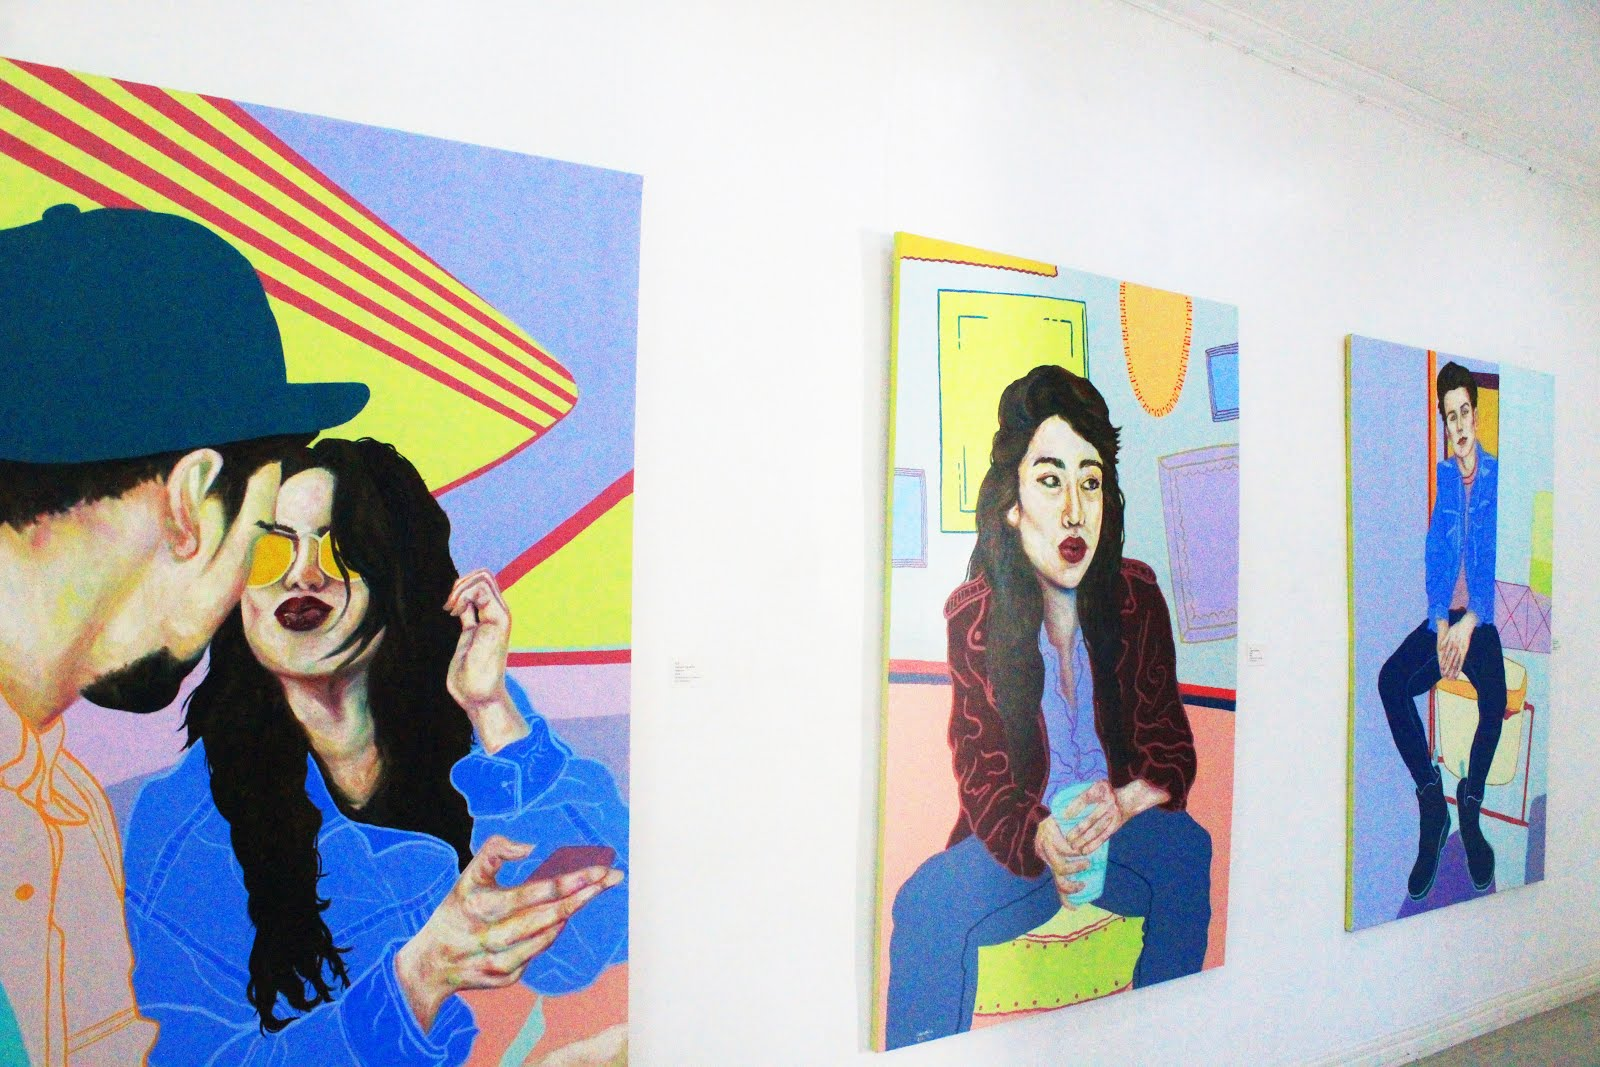 Artist captures blurry Millennial memories on canvas  Art, Creative, Creativity, Culture, Design, Exhibit, Generation, Hugot, Inspiration, Love, Millennials, Selfie Generation, Sentimental, Selfie, Hue Are, Claudine Dignadice, Fashion, Party, Trend, Youth